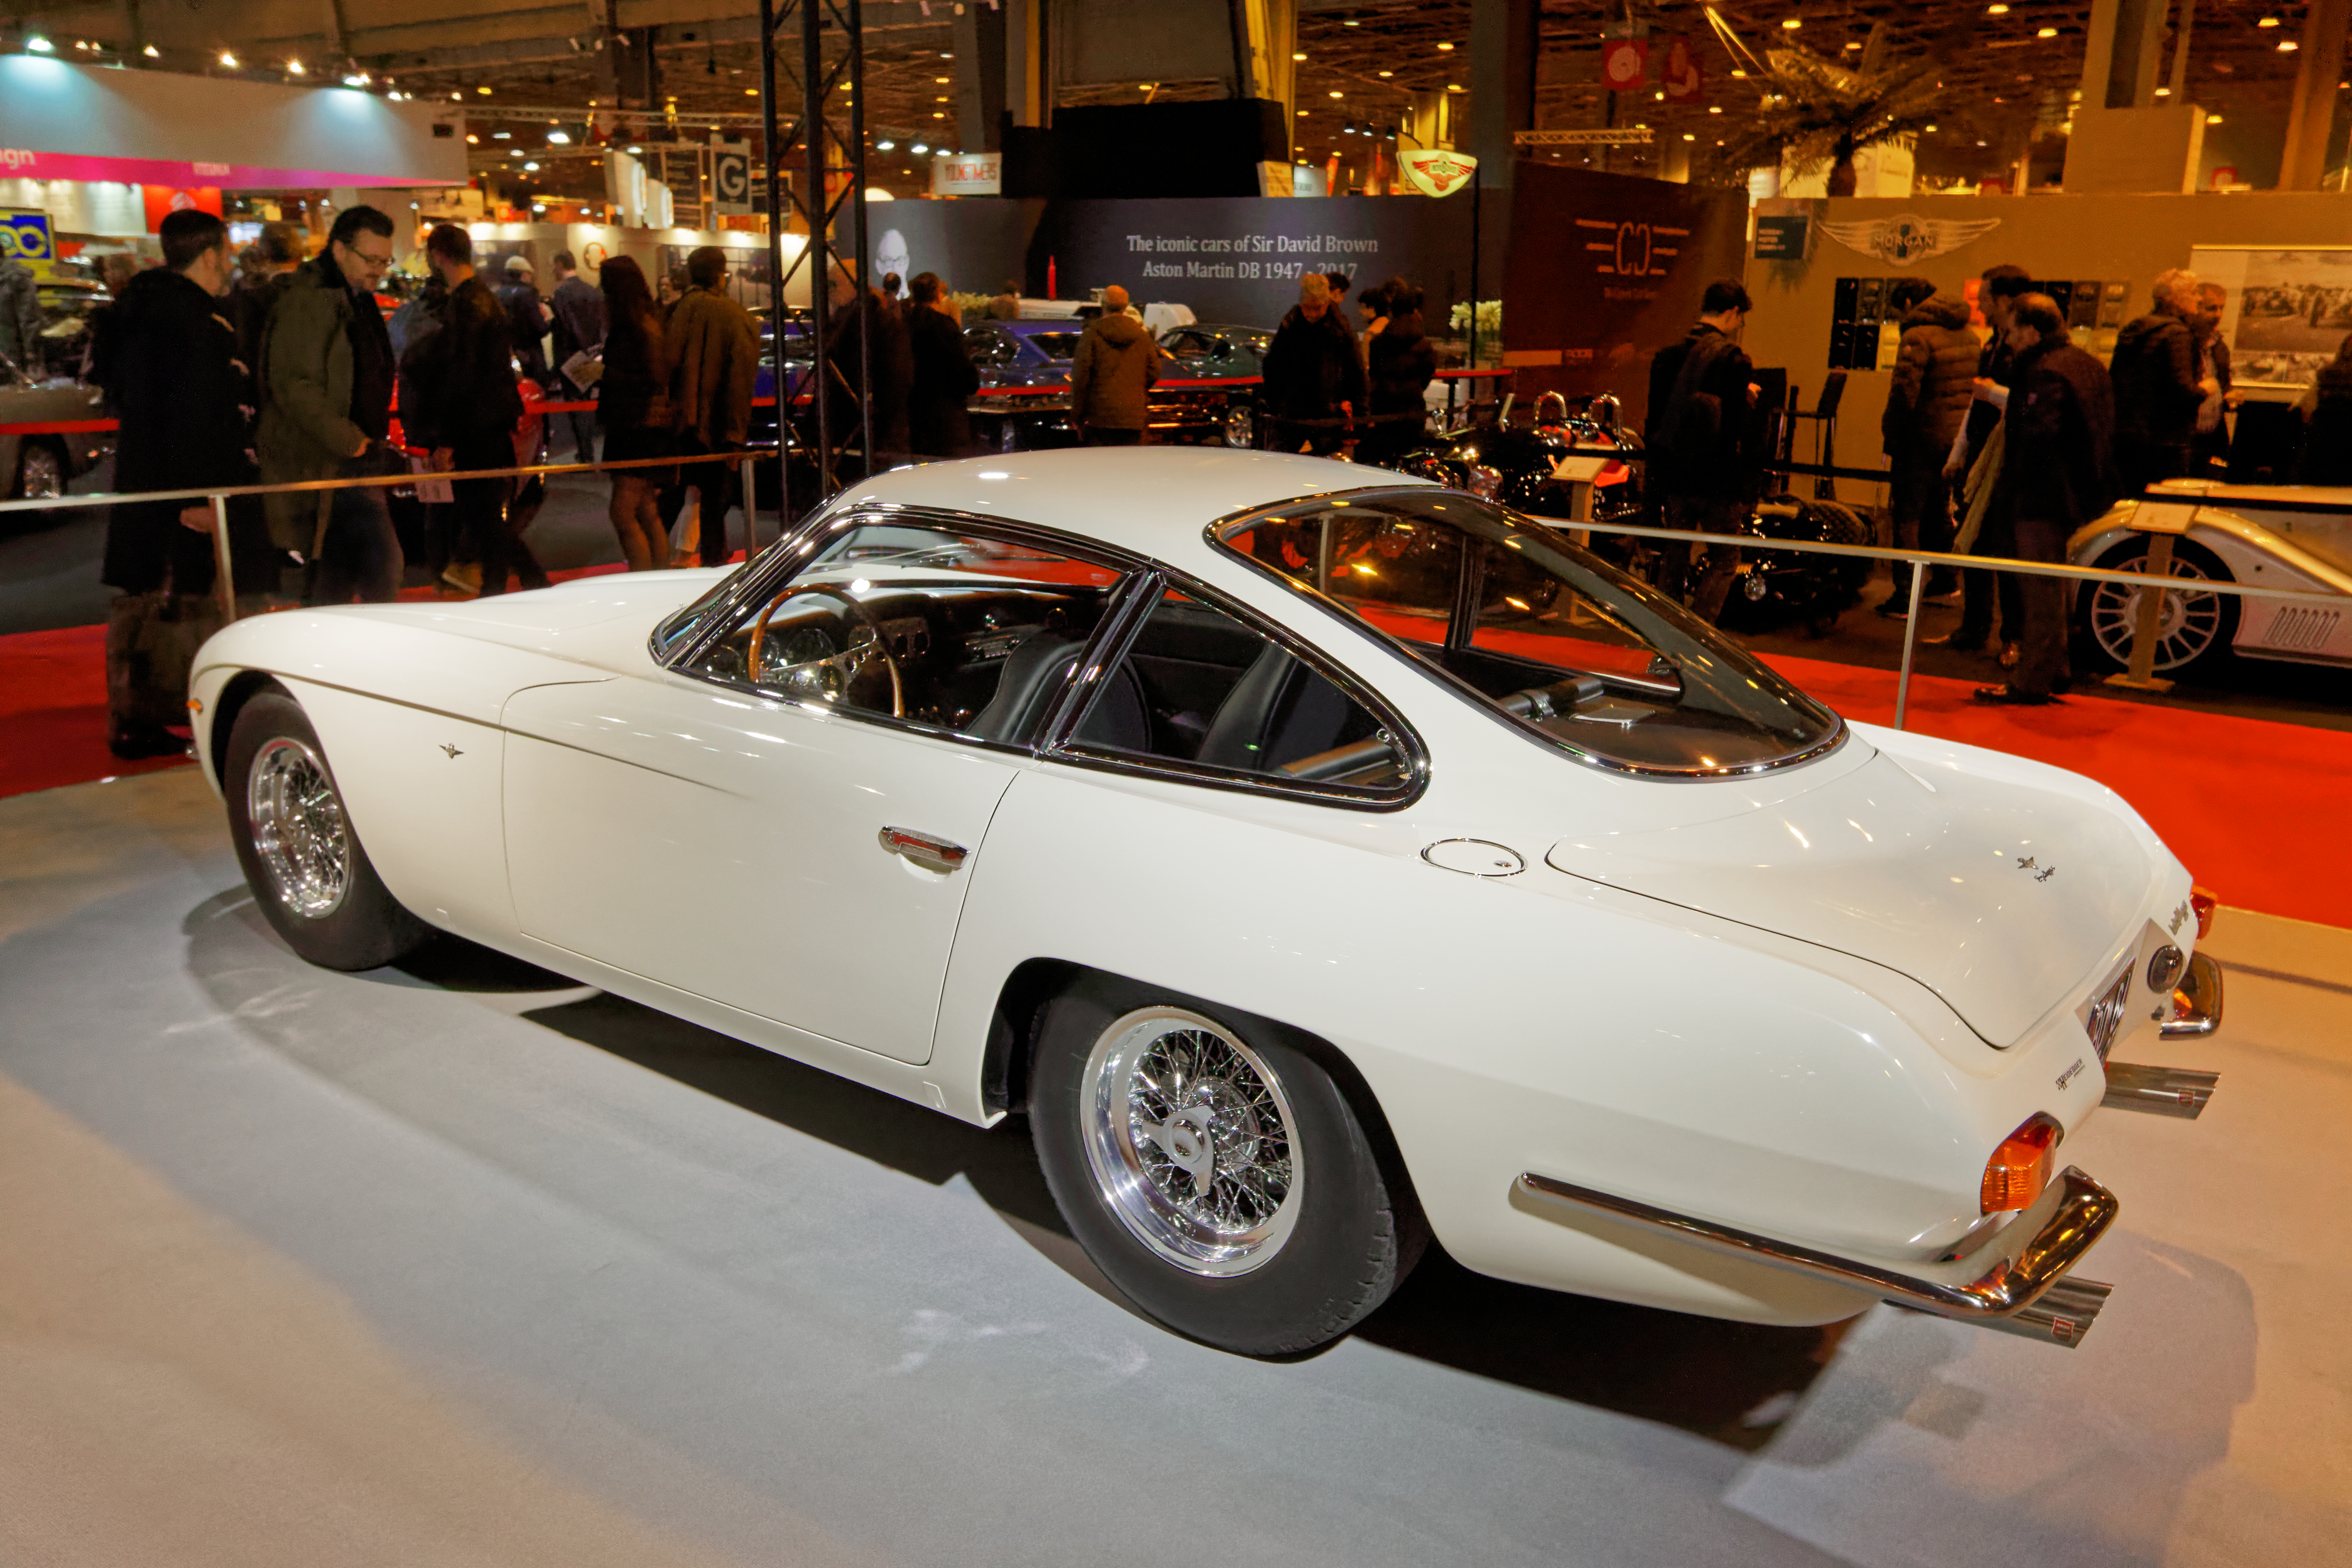 https://upload.wikimedia.org/wikipedia/commons/1/14/R%C3%A9tromobile_2017_-_Lamborghini_350_GT_coup%C3%A9_touring_-_1964_-_002.jpg